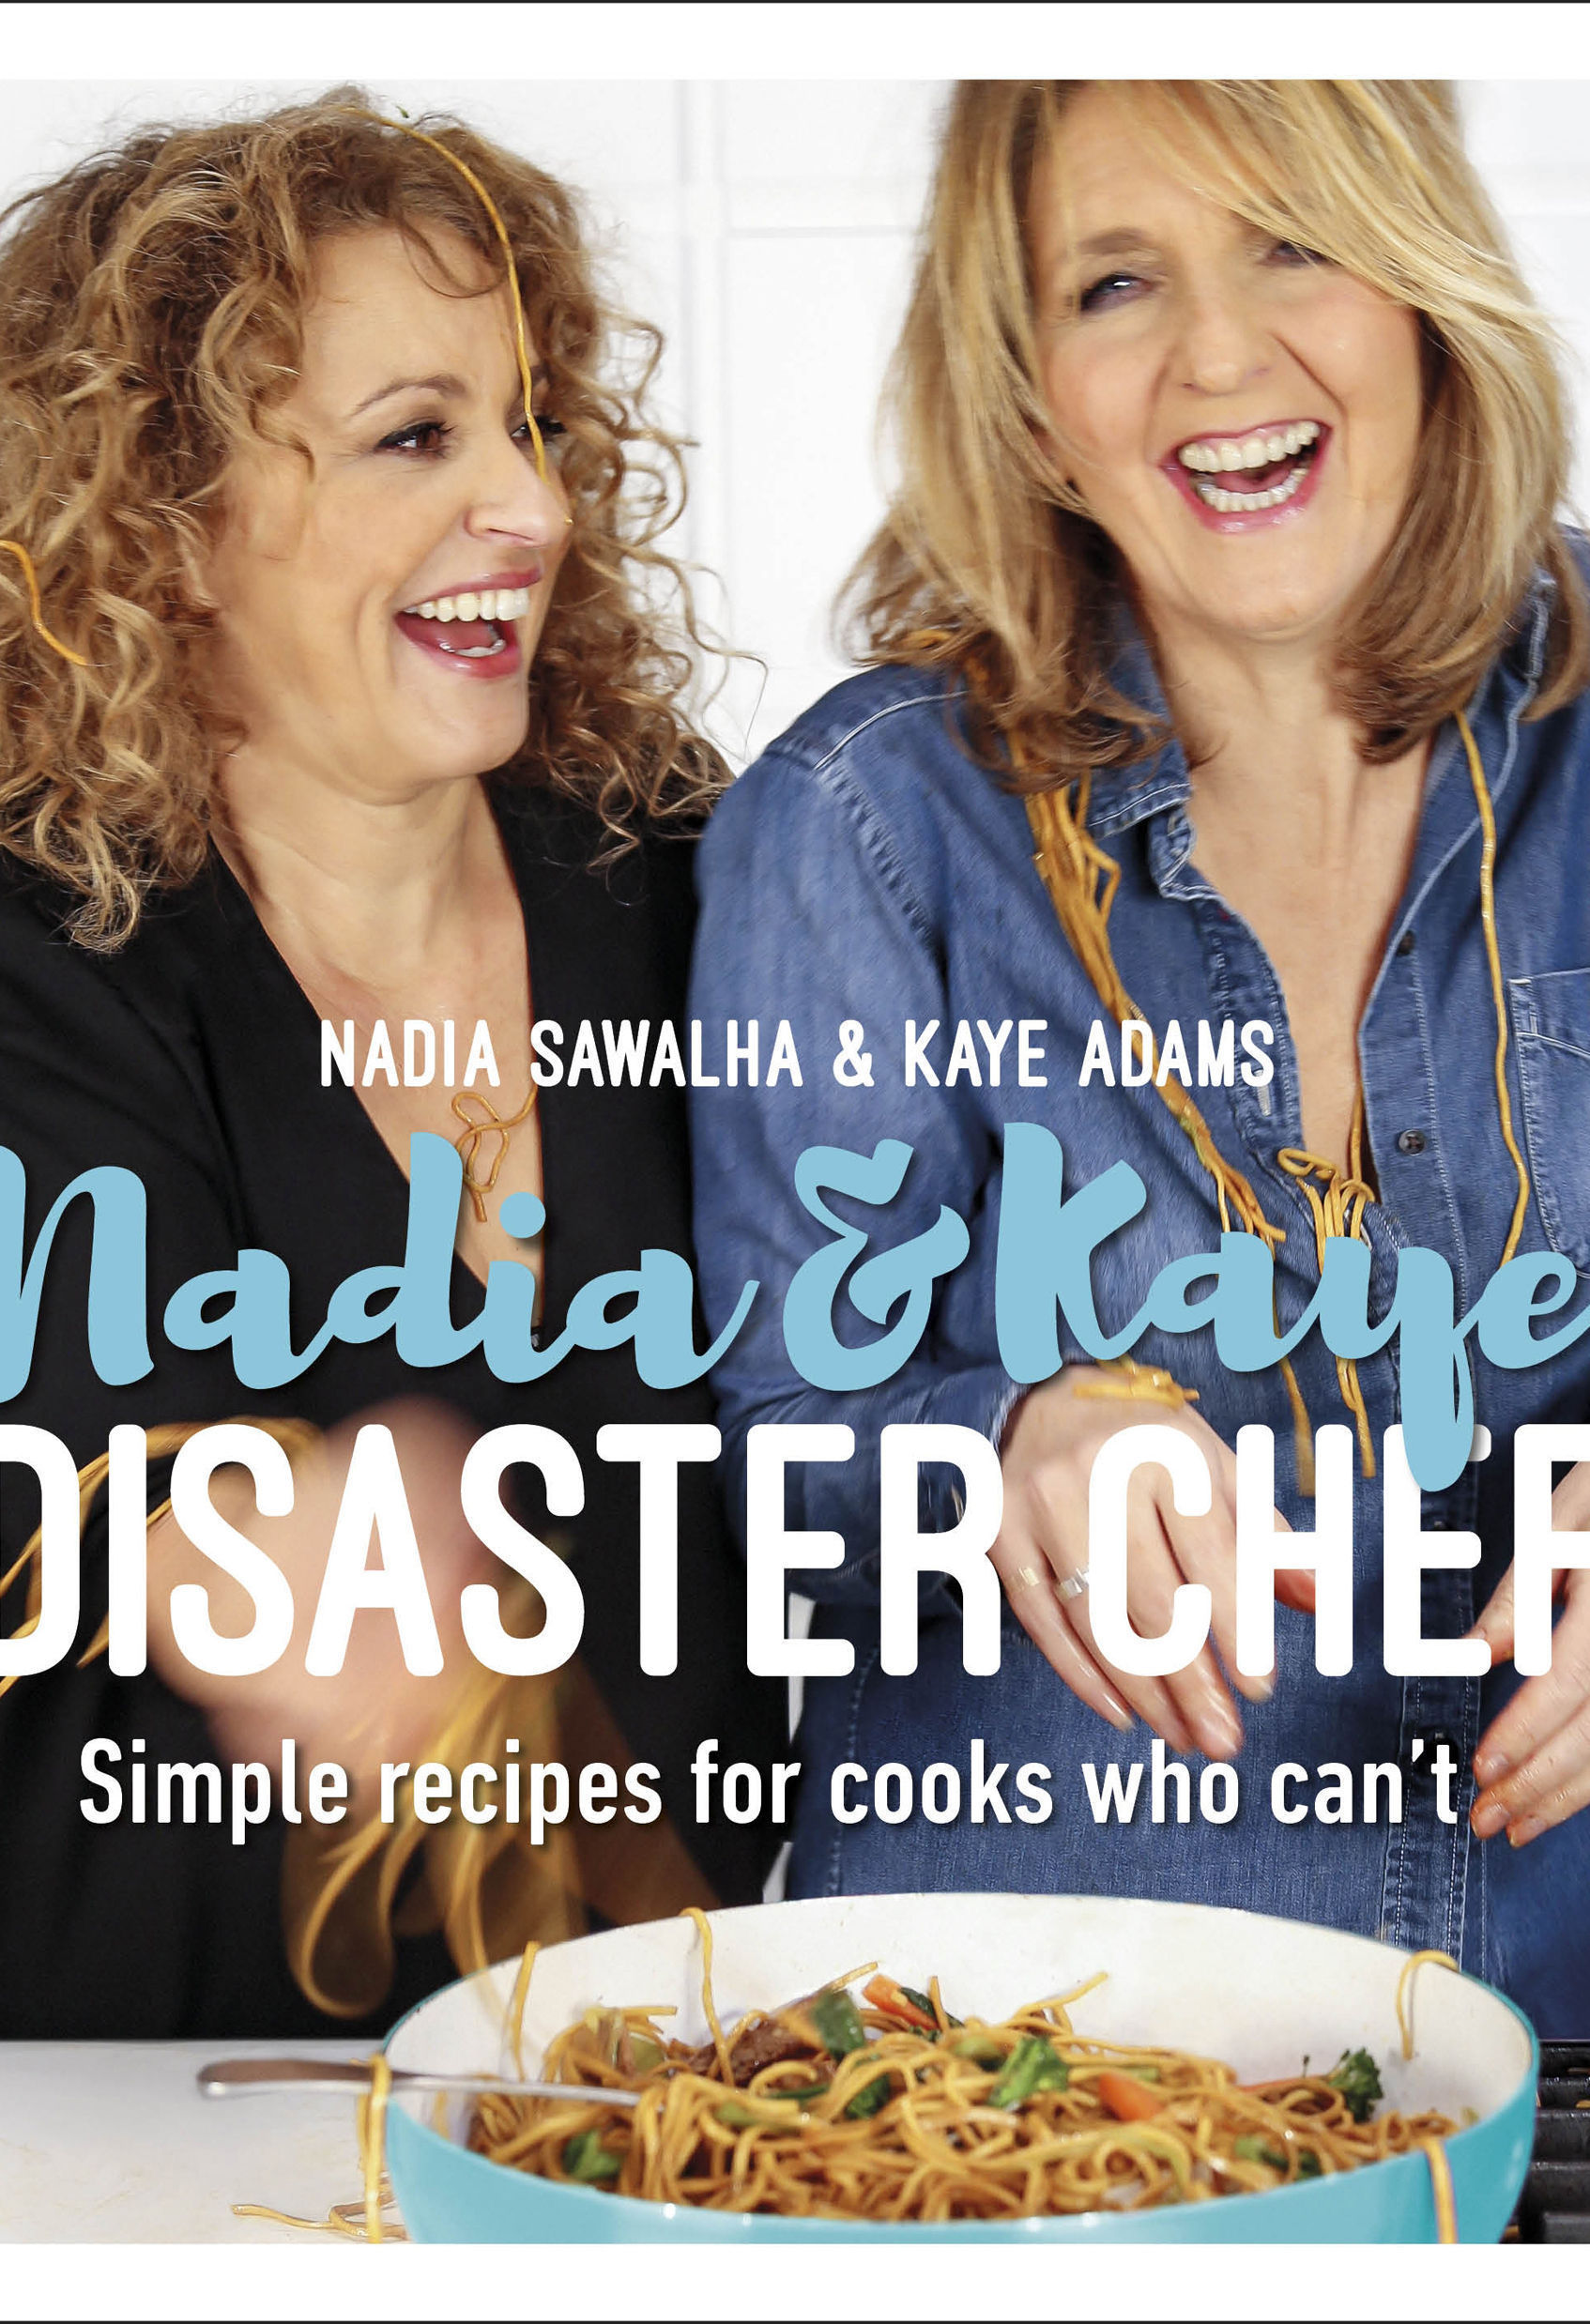 Kaye and Nadia let loose in the kitchen